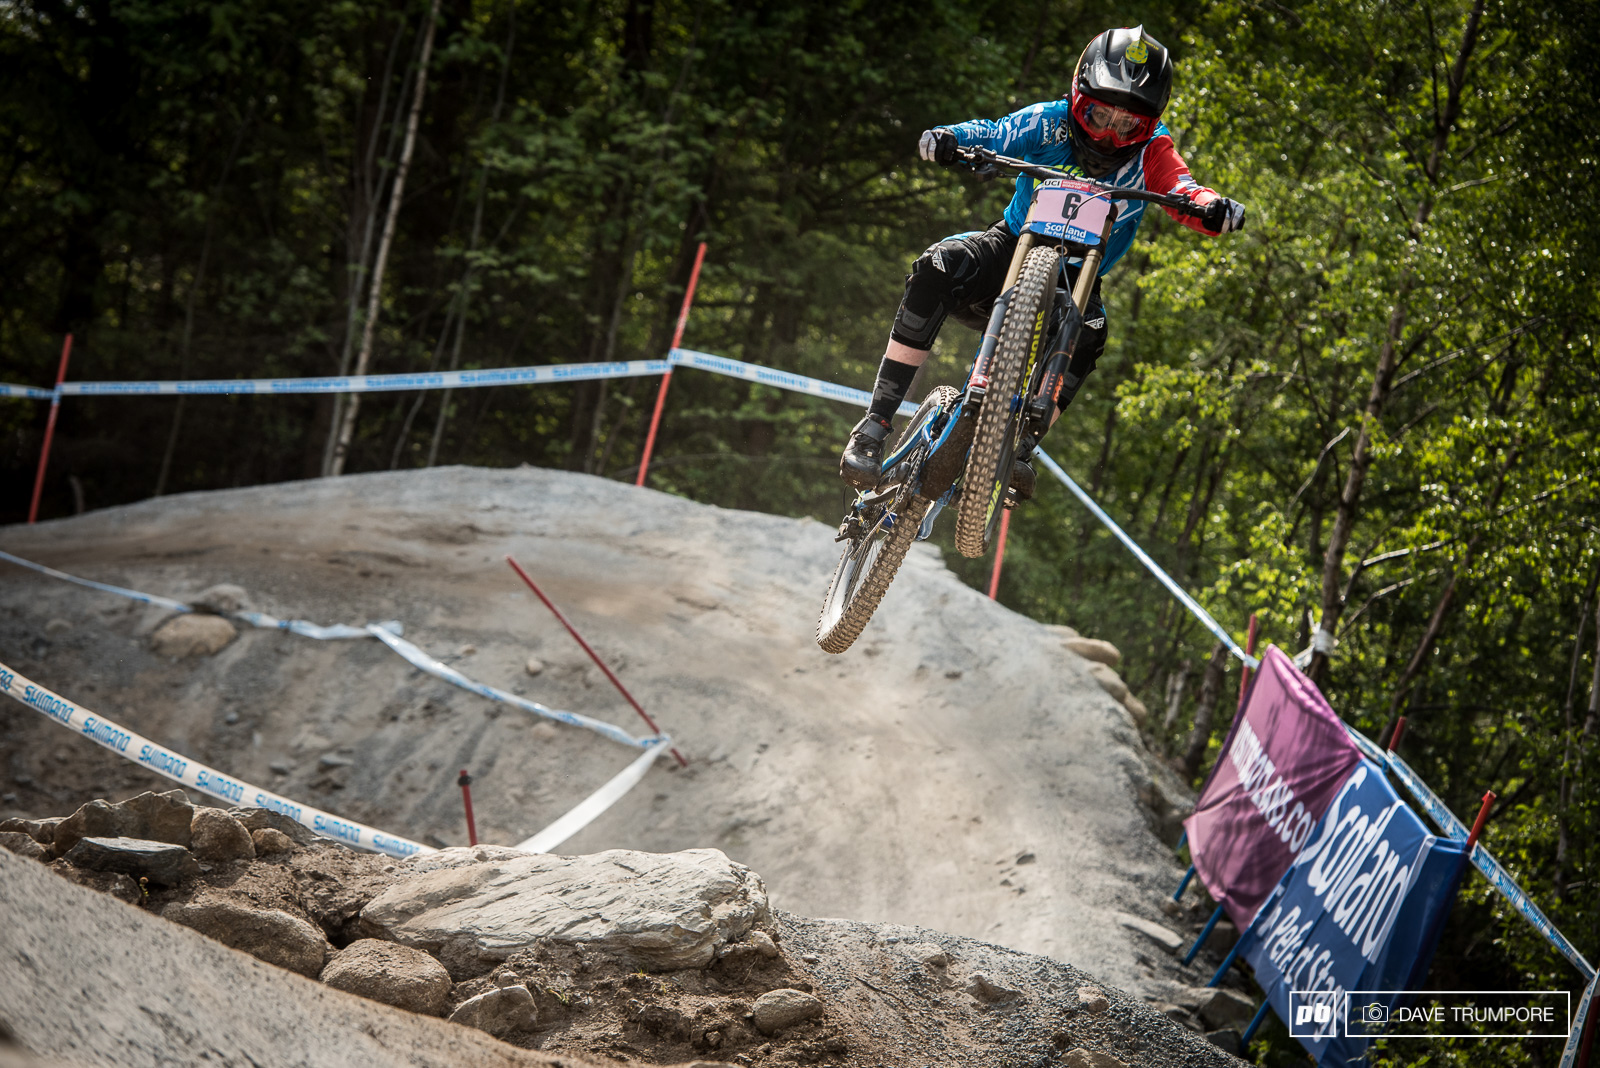 Emilie Siebenthaler hits the extra boost button en route to 5th.